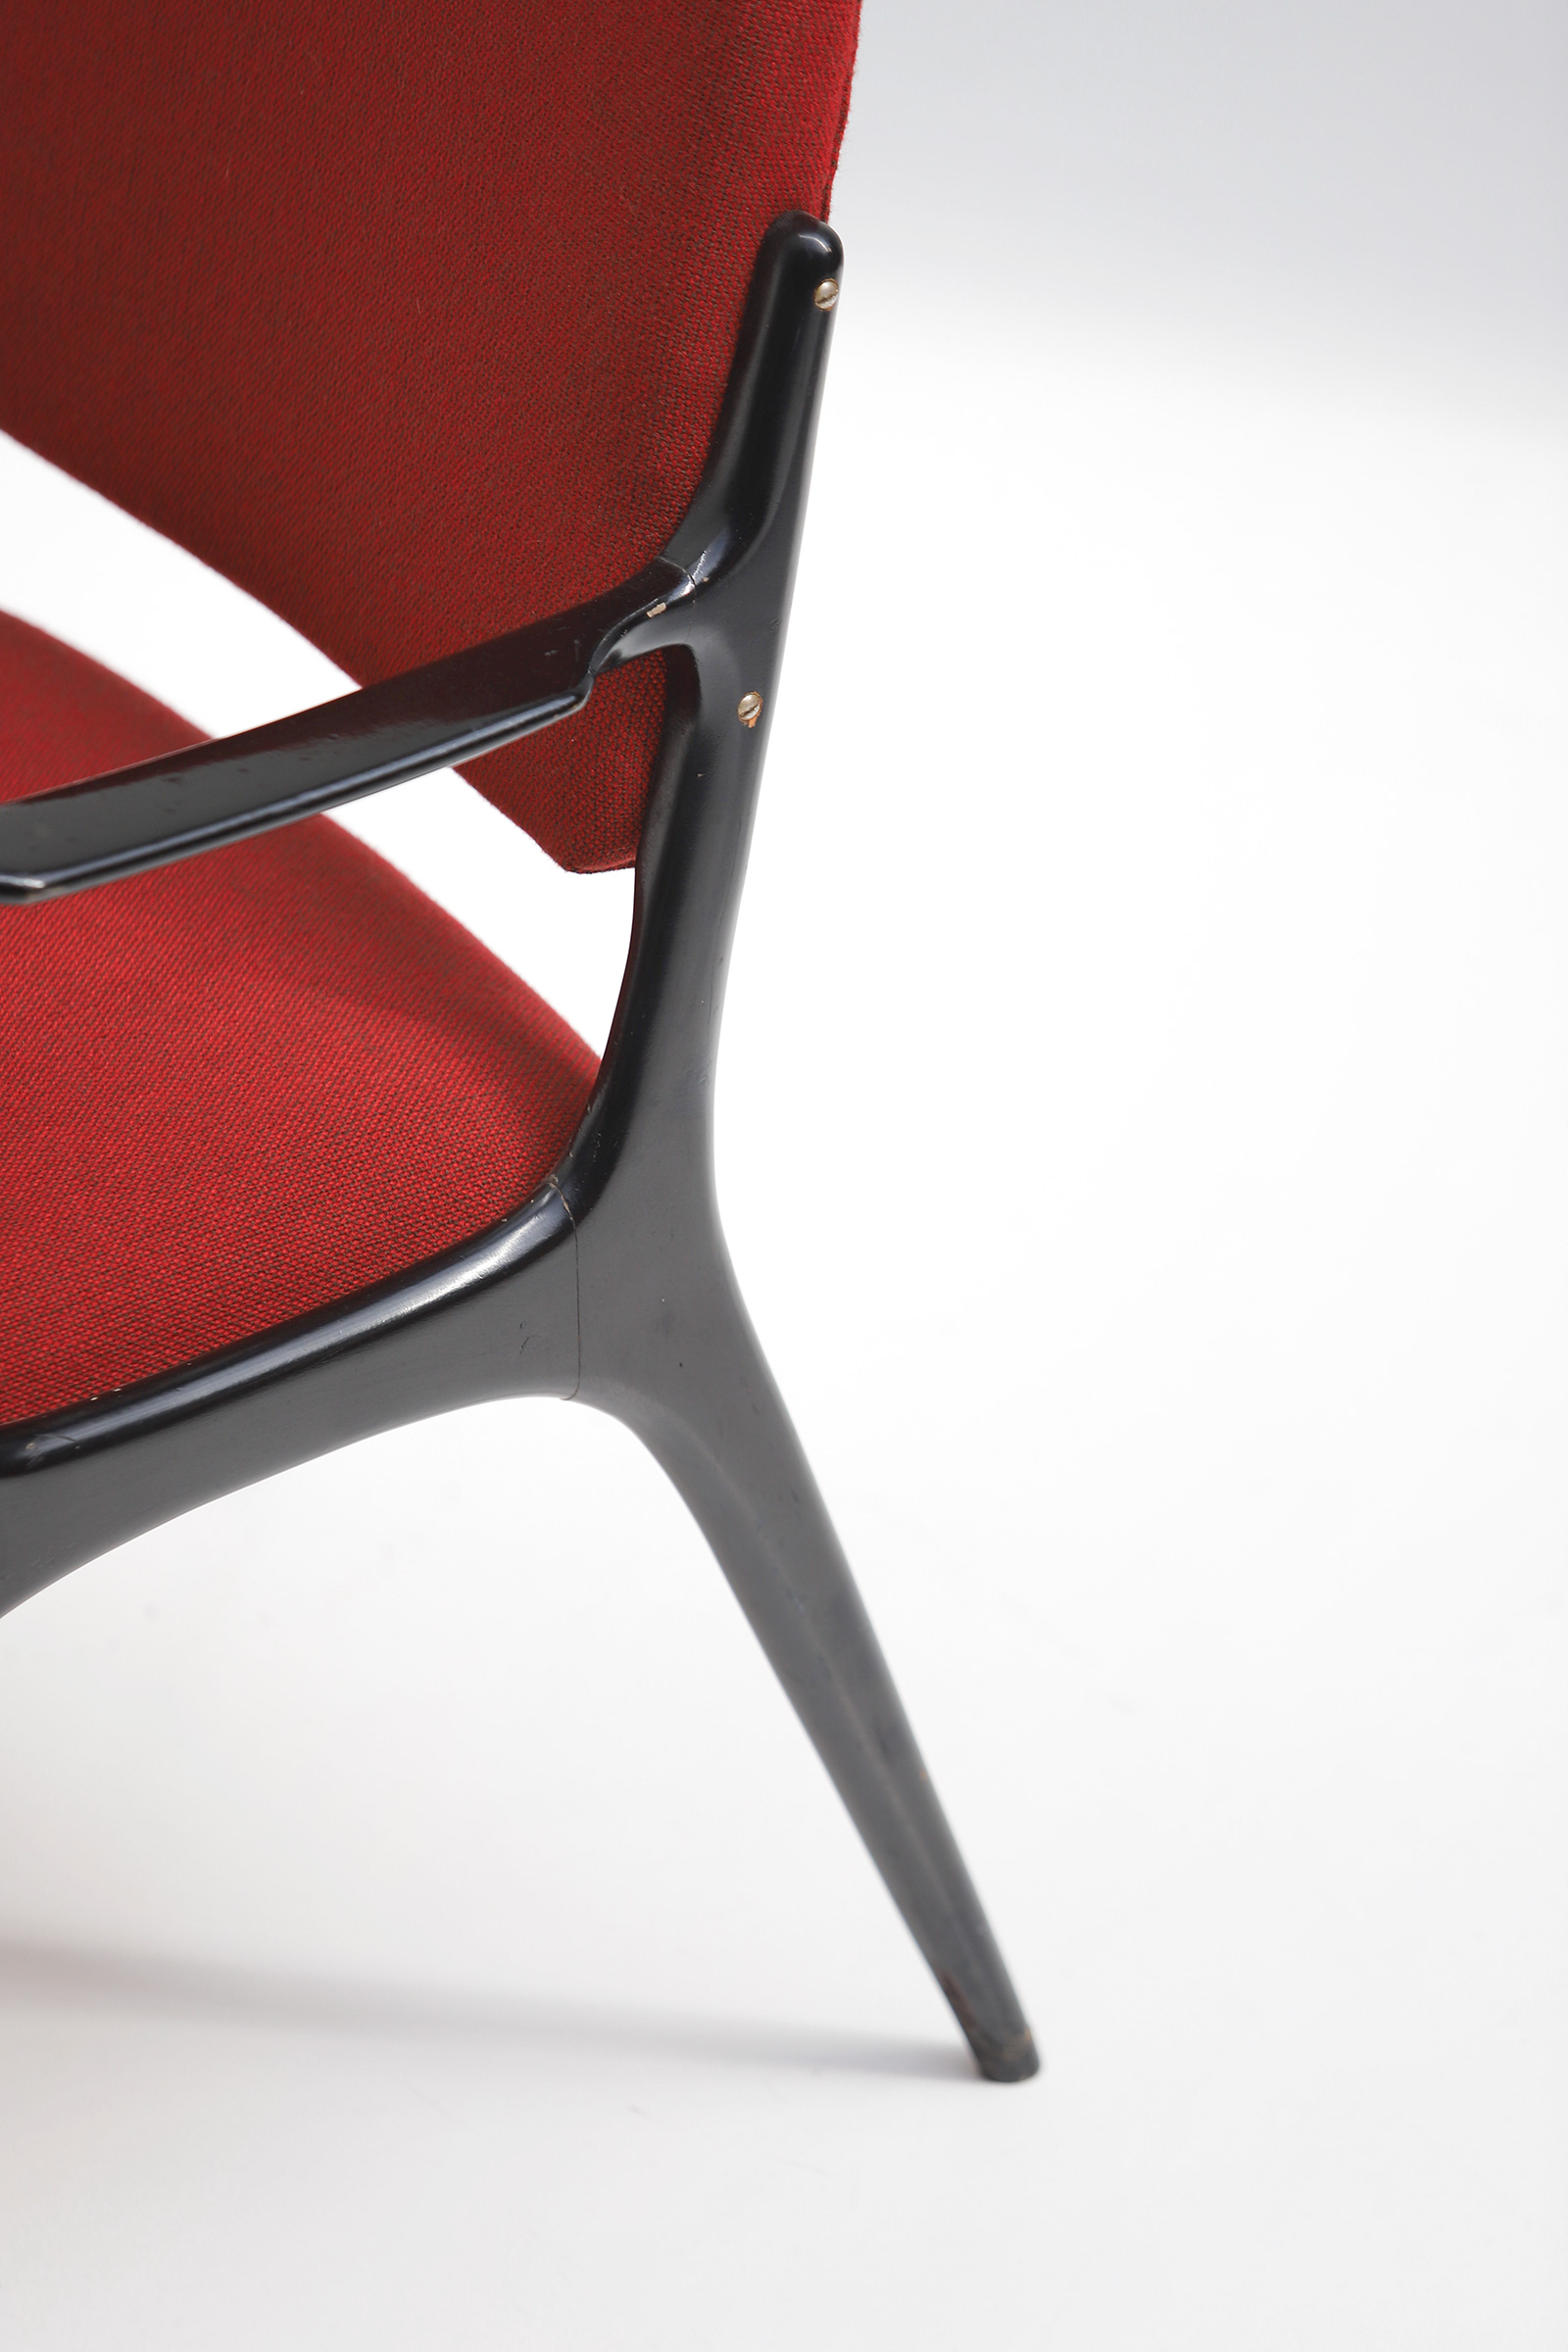 Two Chairs By Alfred Hendrickx for Belform